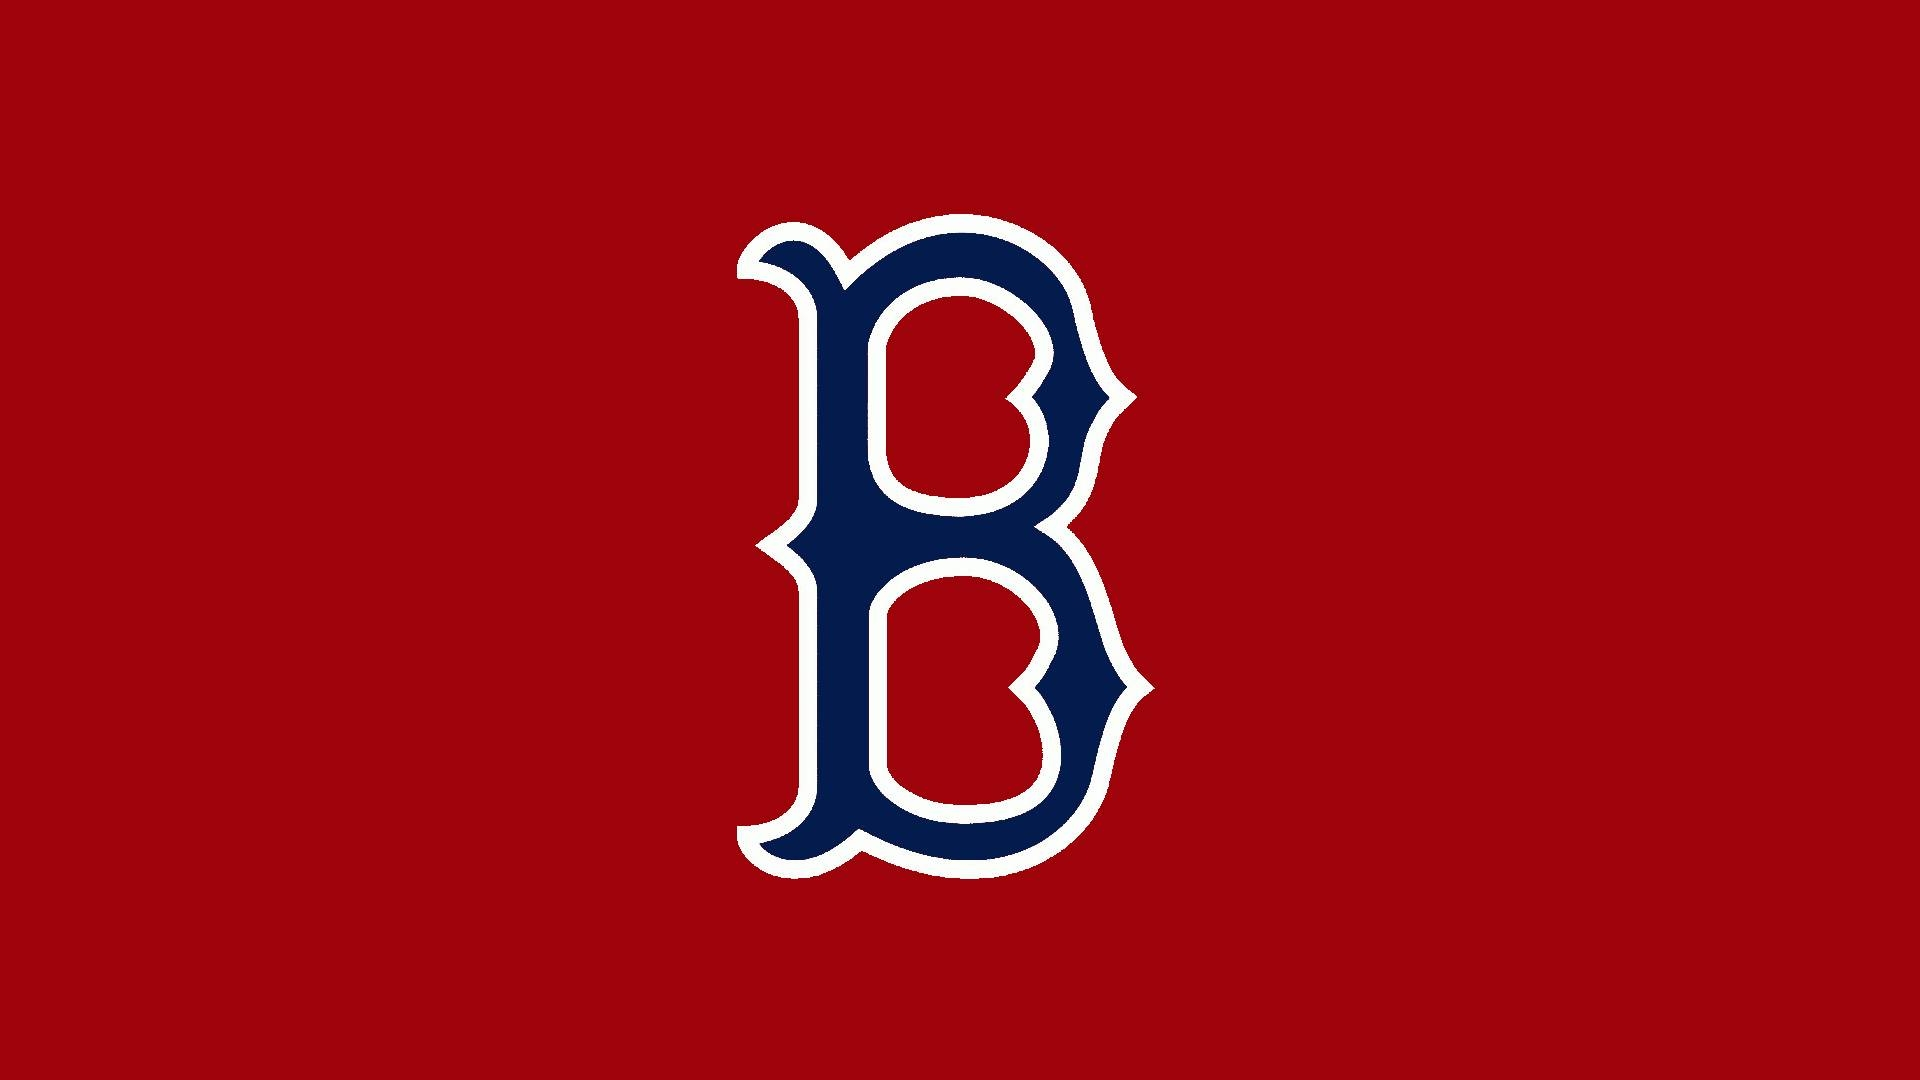 Boston Red Sox Logo Wallpaper | Free Download Clip Art | Free Clip Pertaining To Newest Red Sox Wall Art (View 5 of 23)